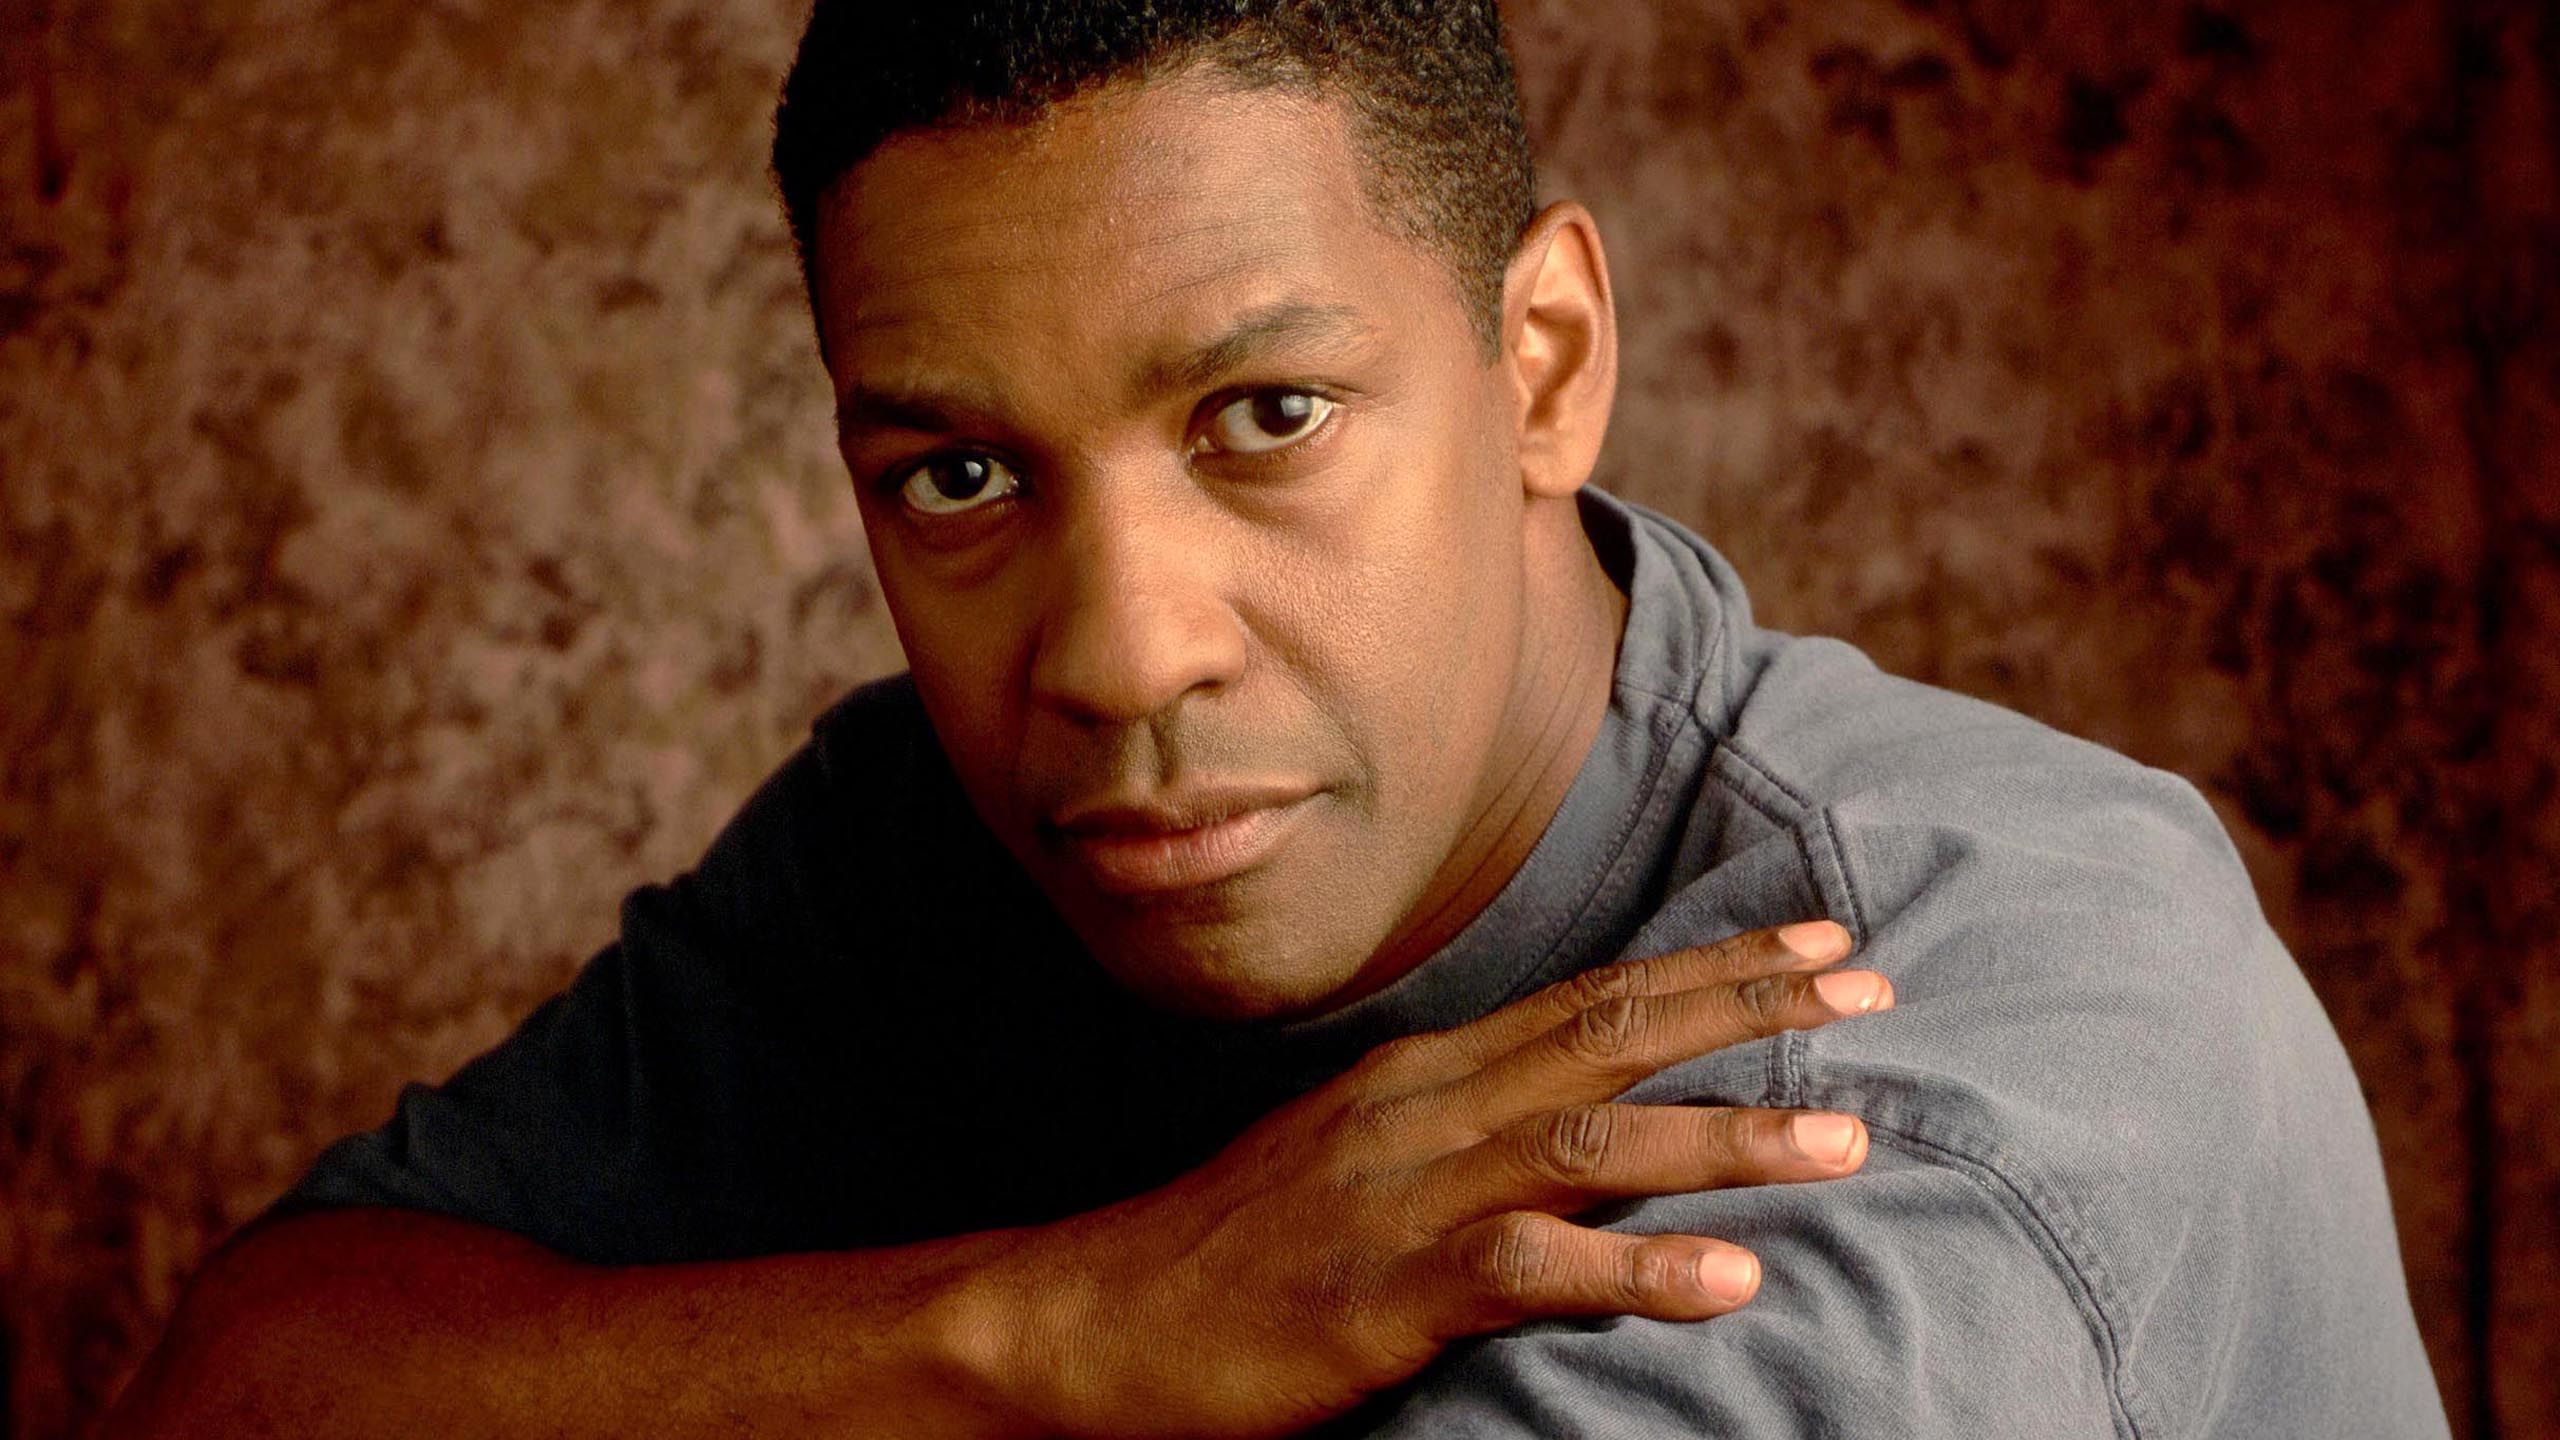 Denzel Washington Most Handsome Man 2018